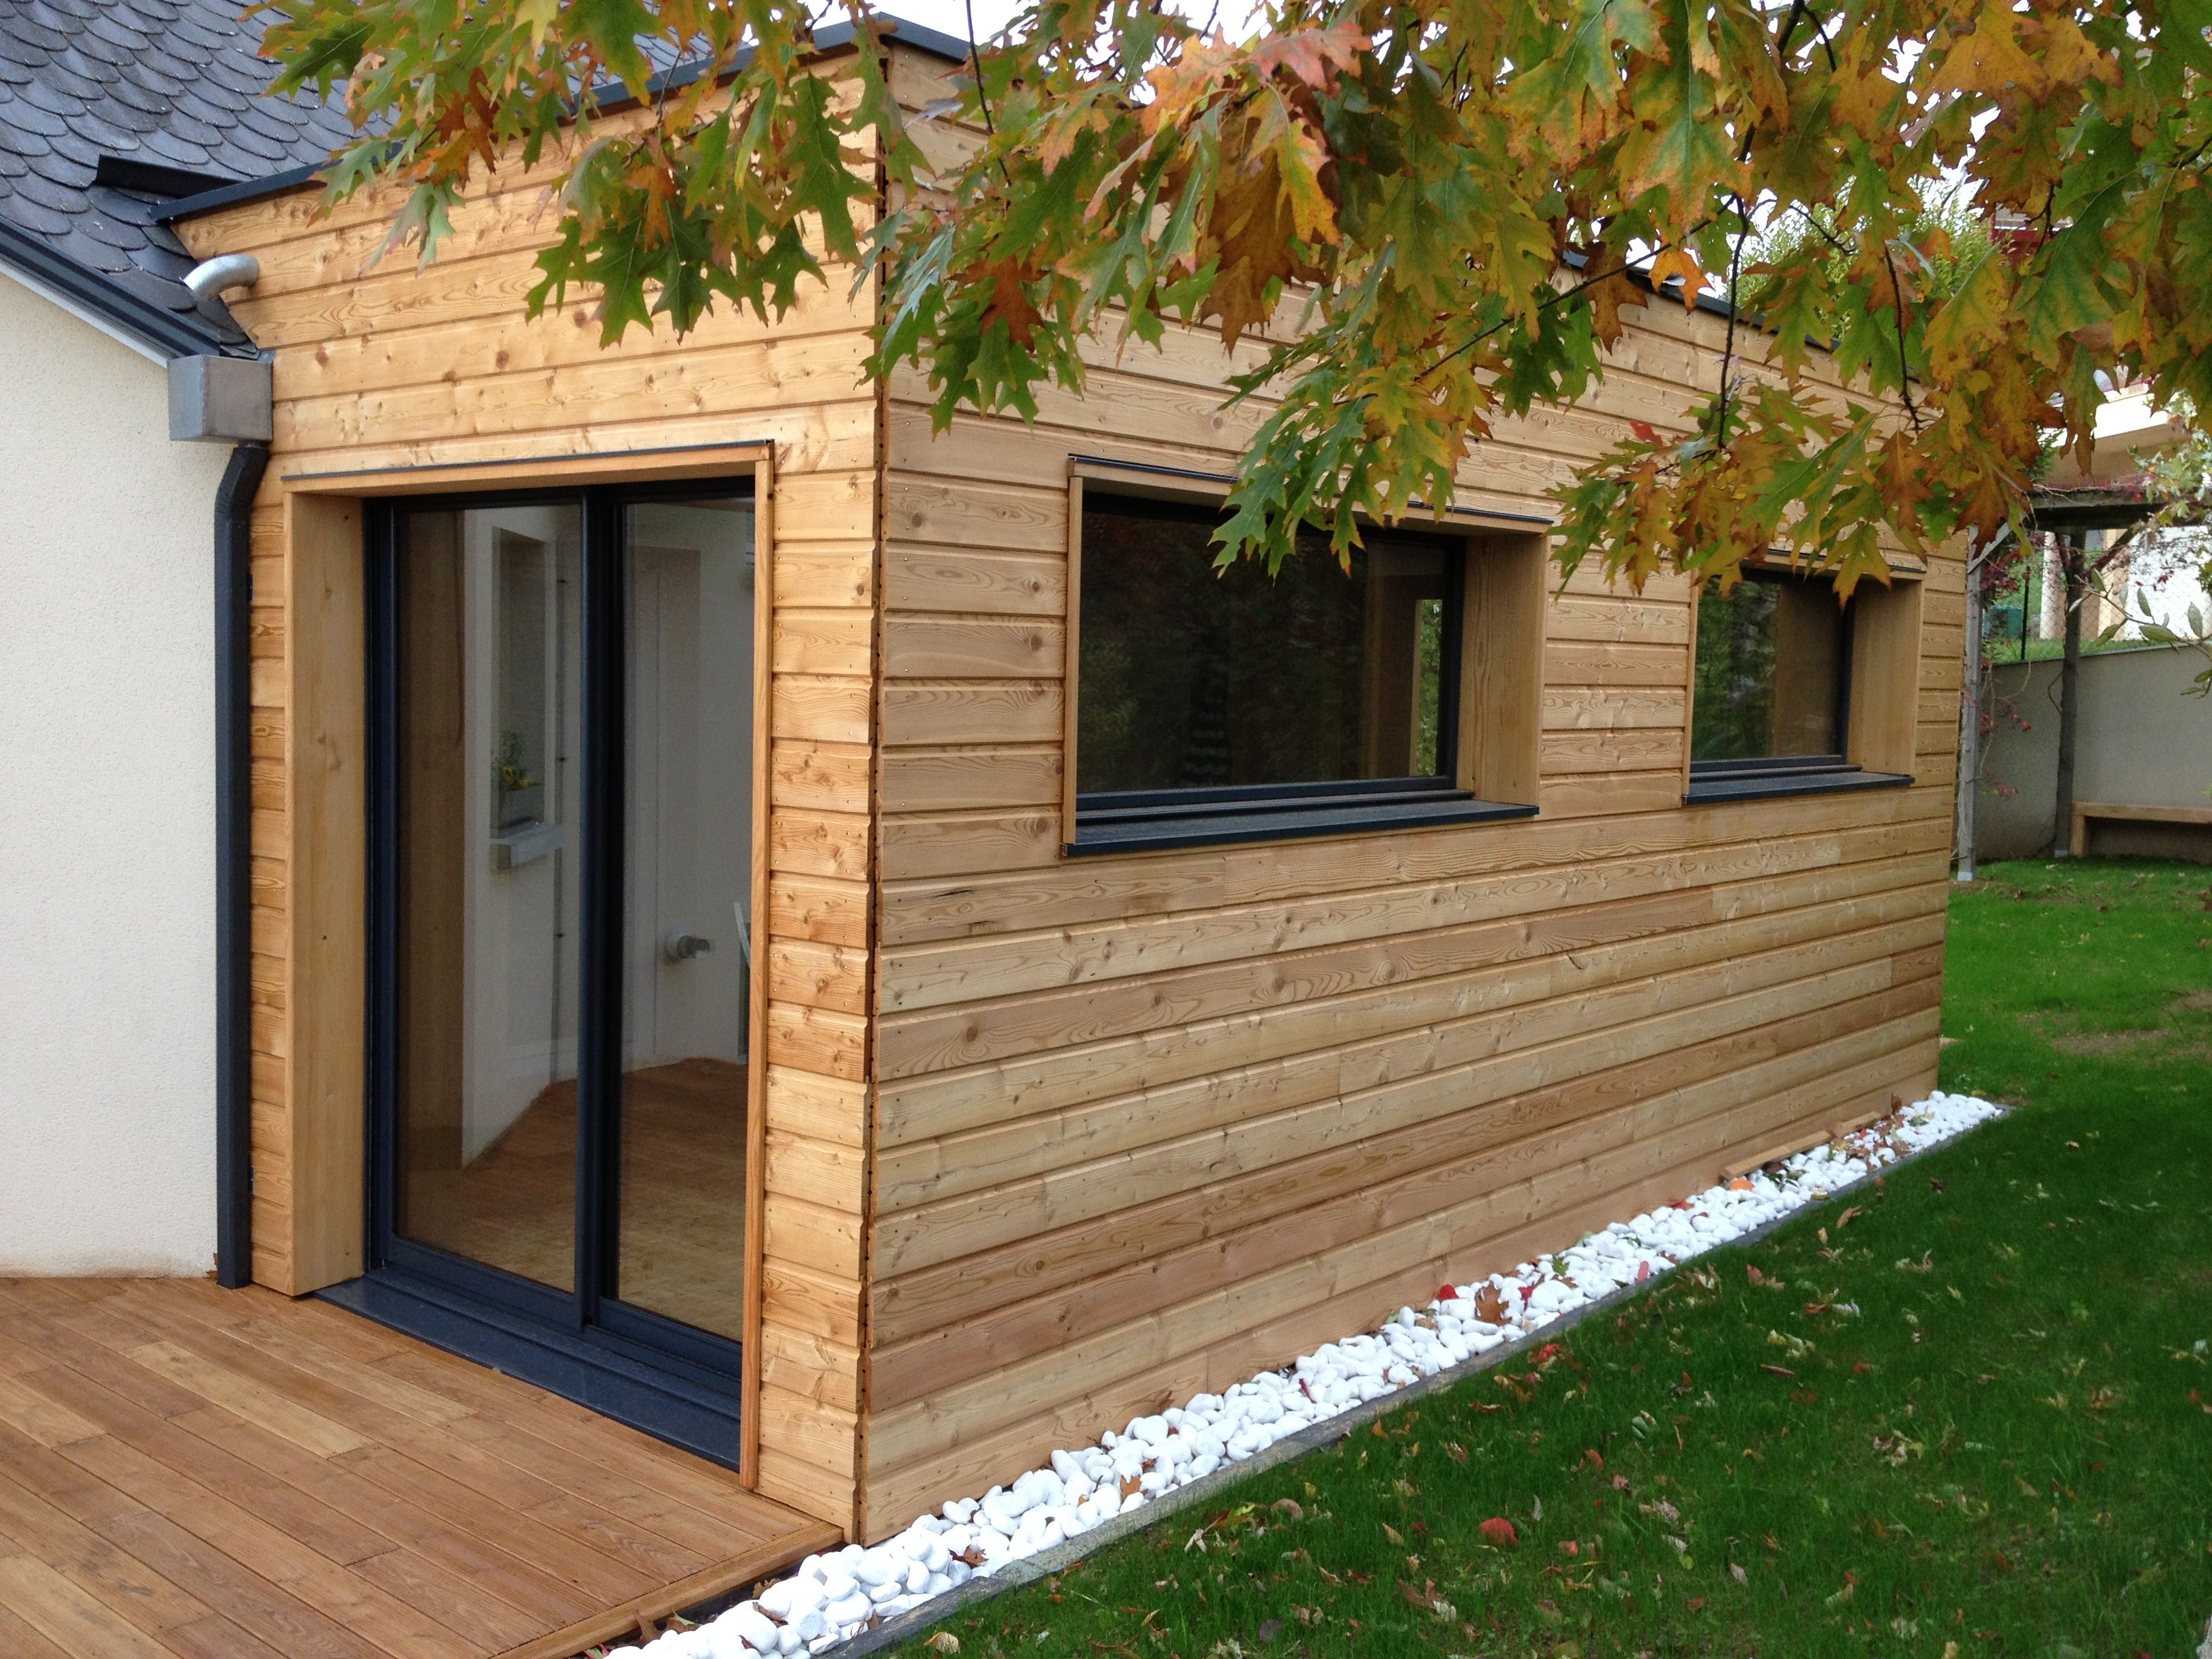 Les 25 Meilleures Id Es De La Cat Gorie Extension En Bois Sur Pinterest Sites D 39 Architecture